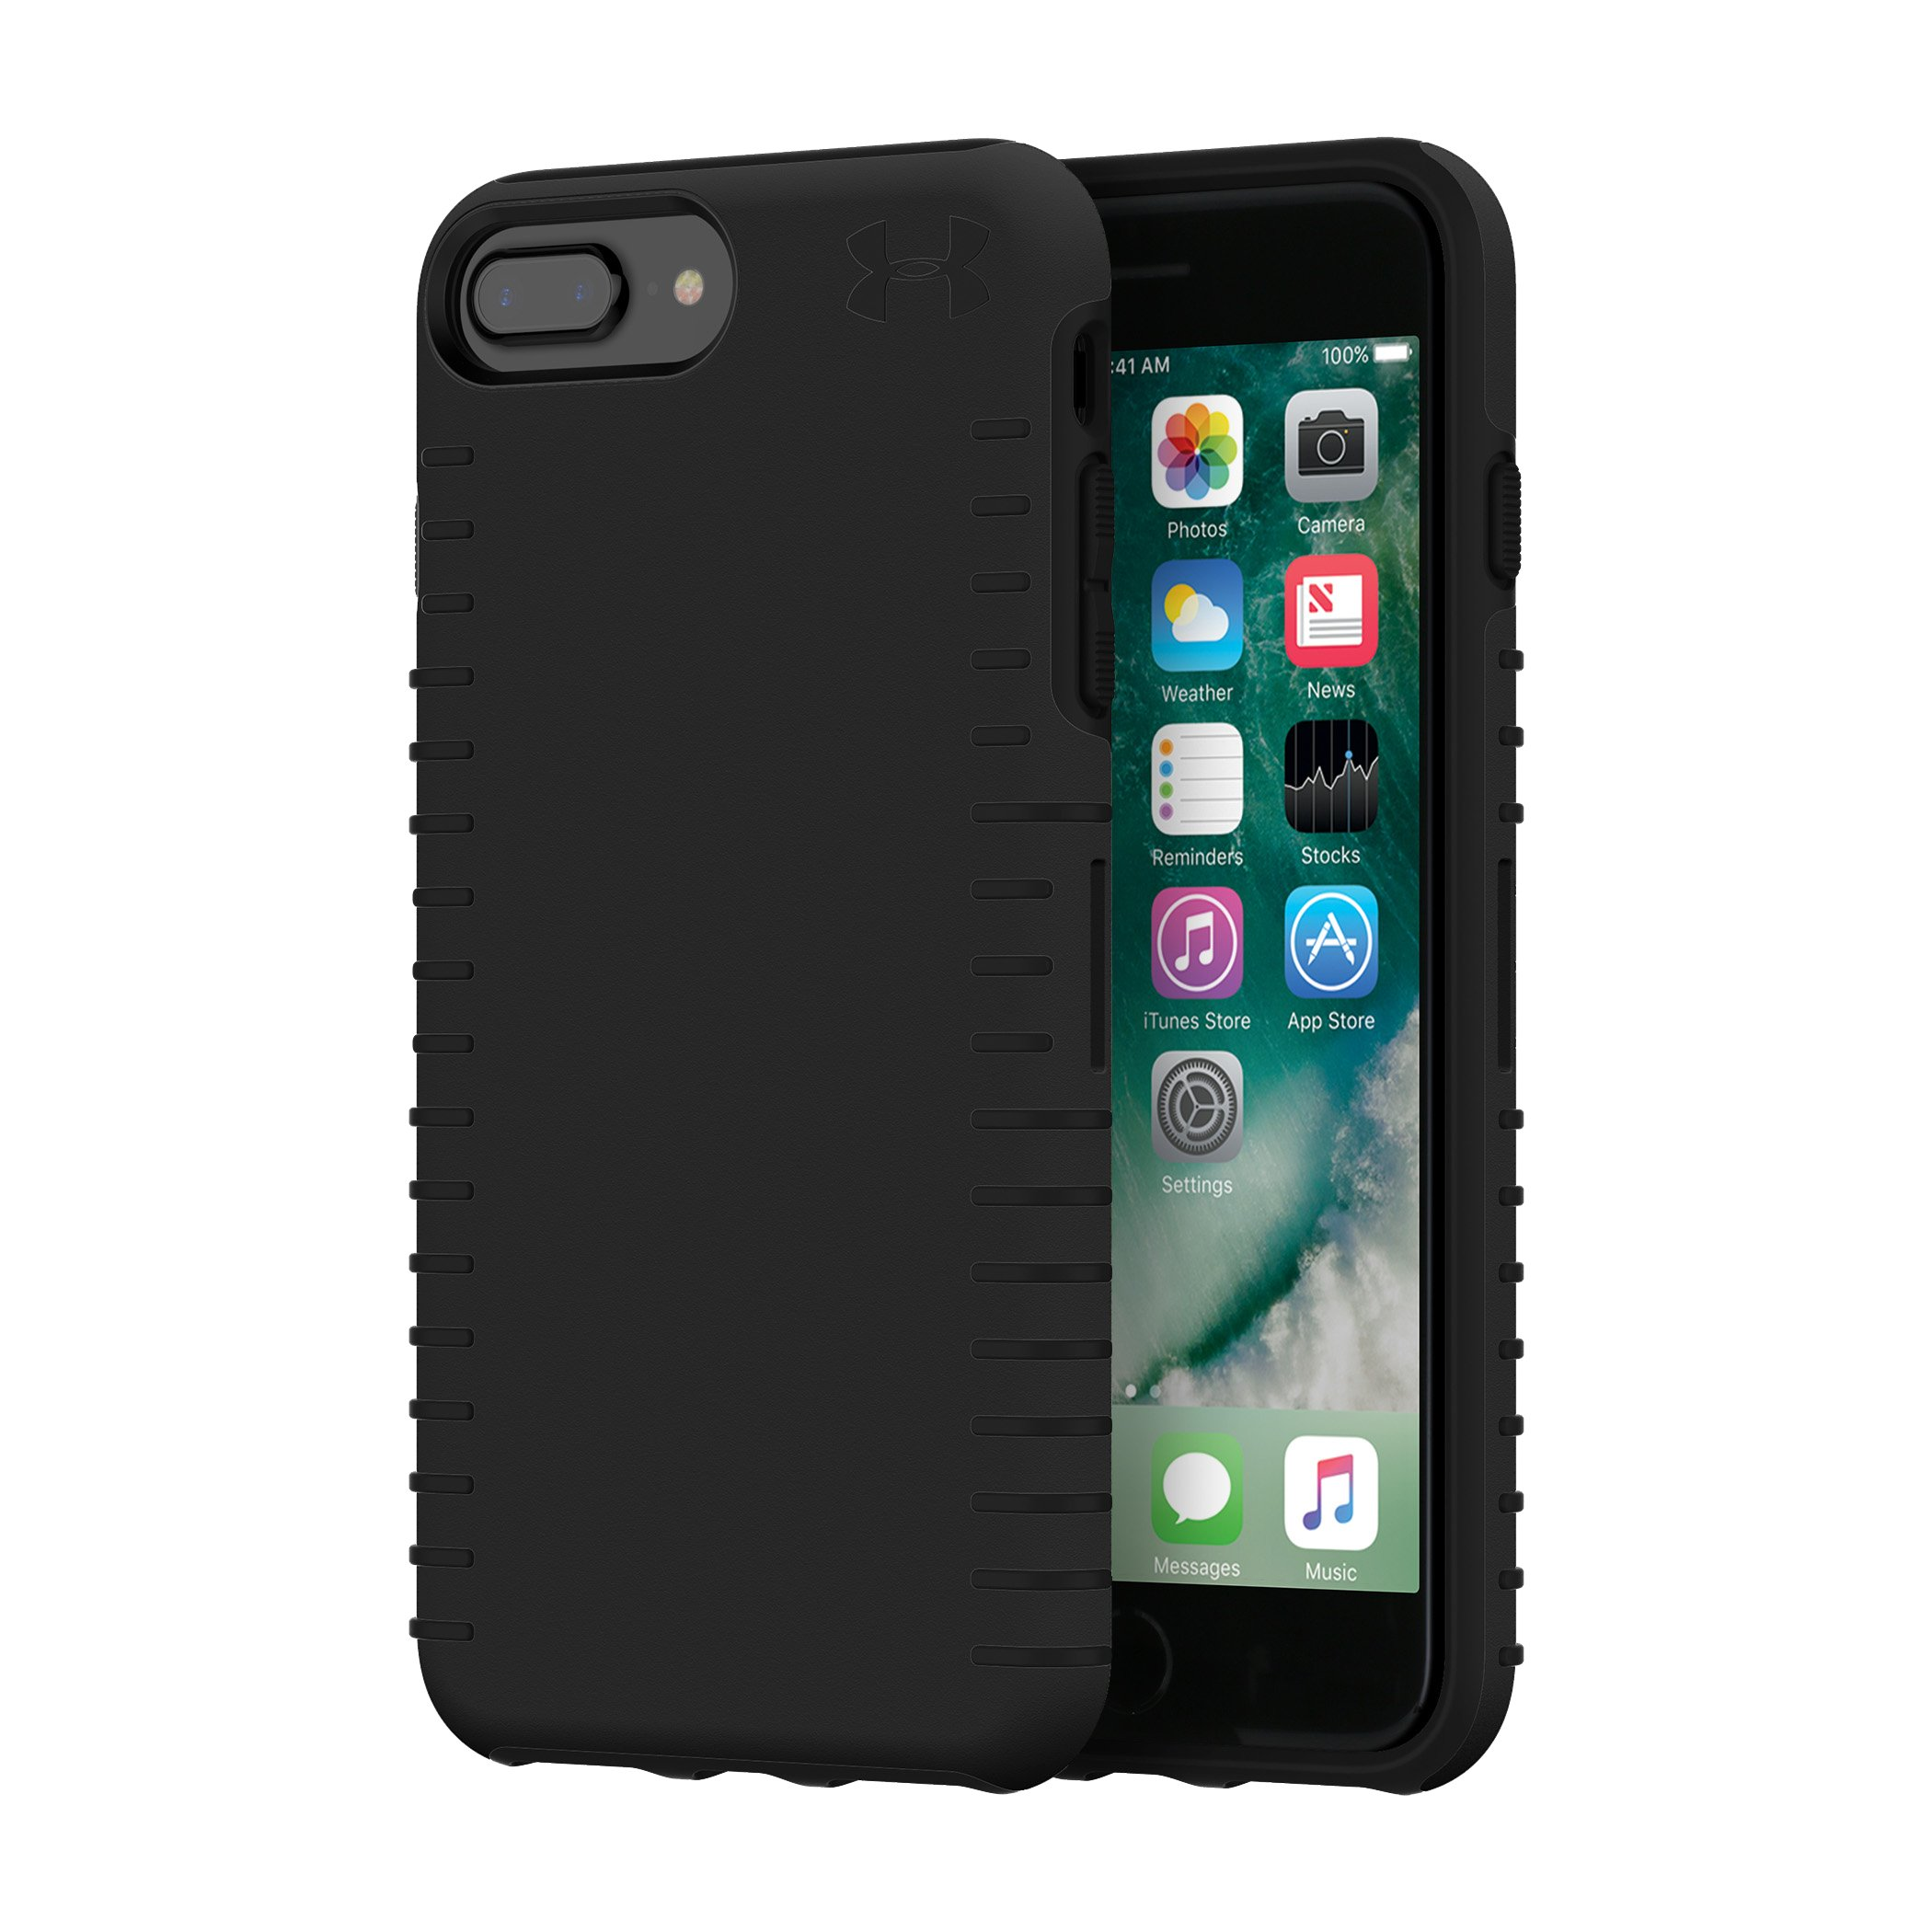 UA Protect Grip Case for iPhone 8 Plus/7 Plus/6 Plus/6s Plus 6 Colors $39.99